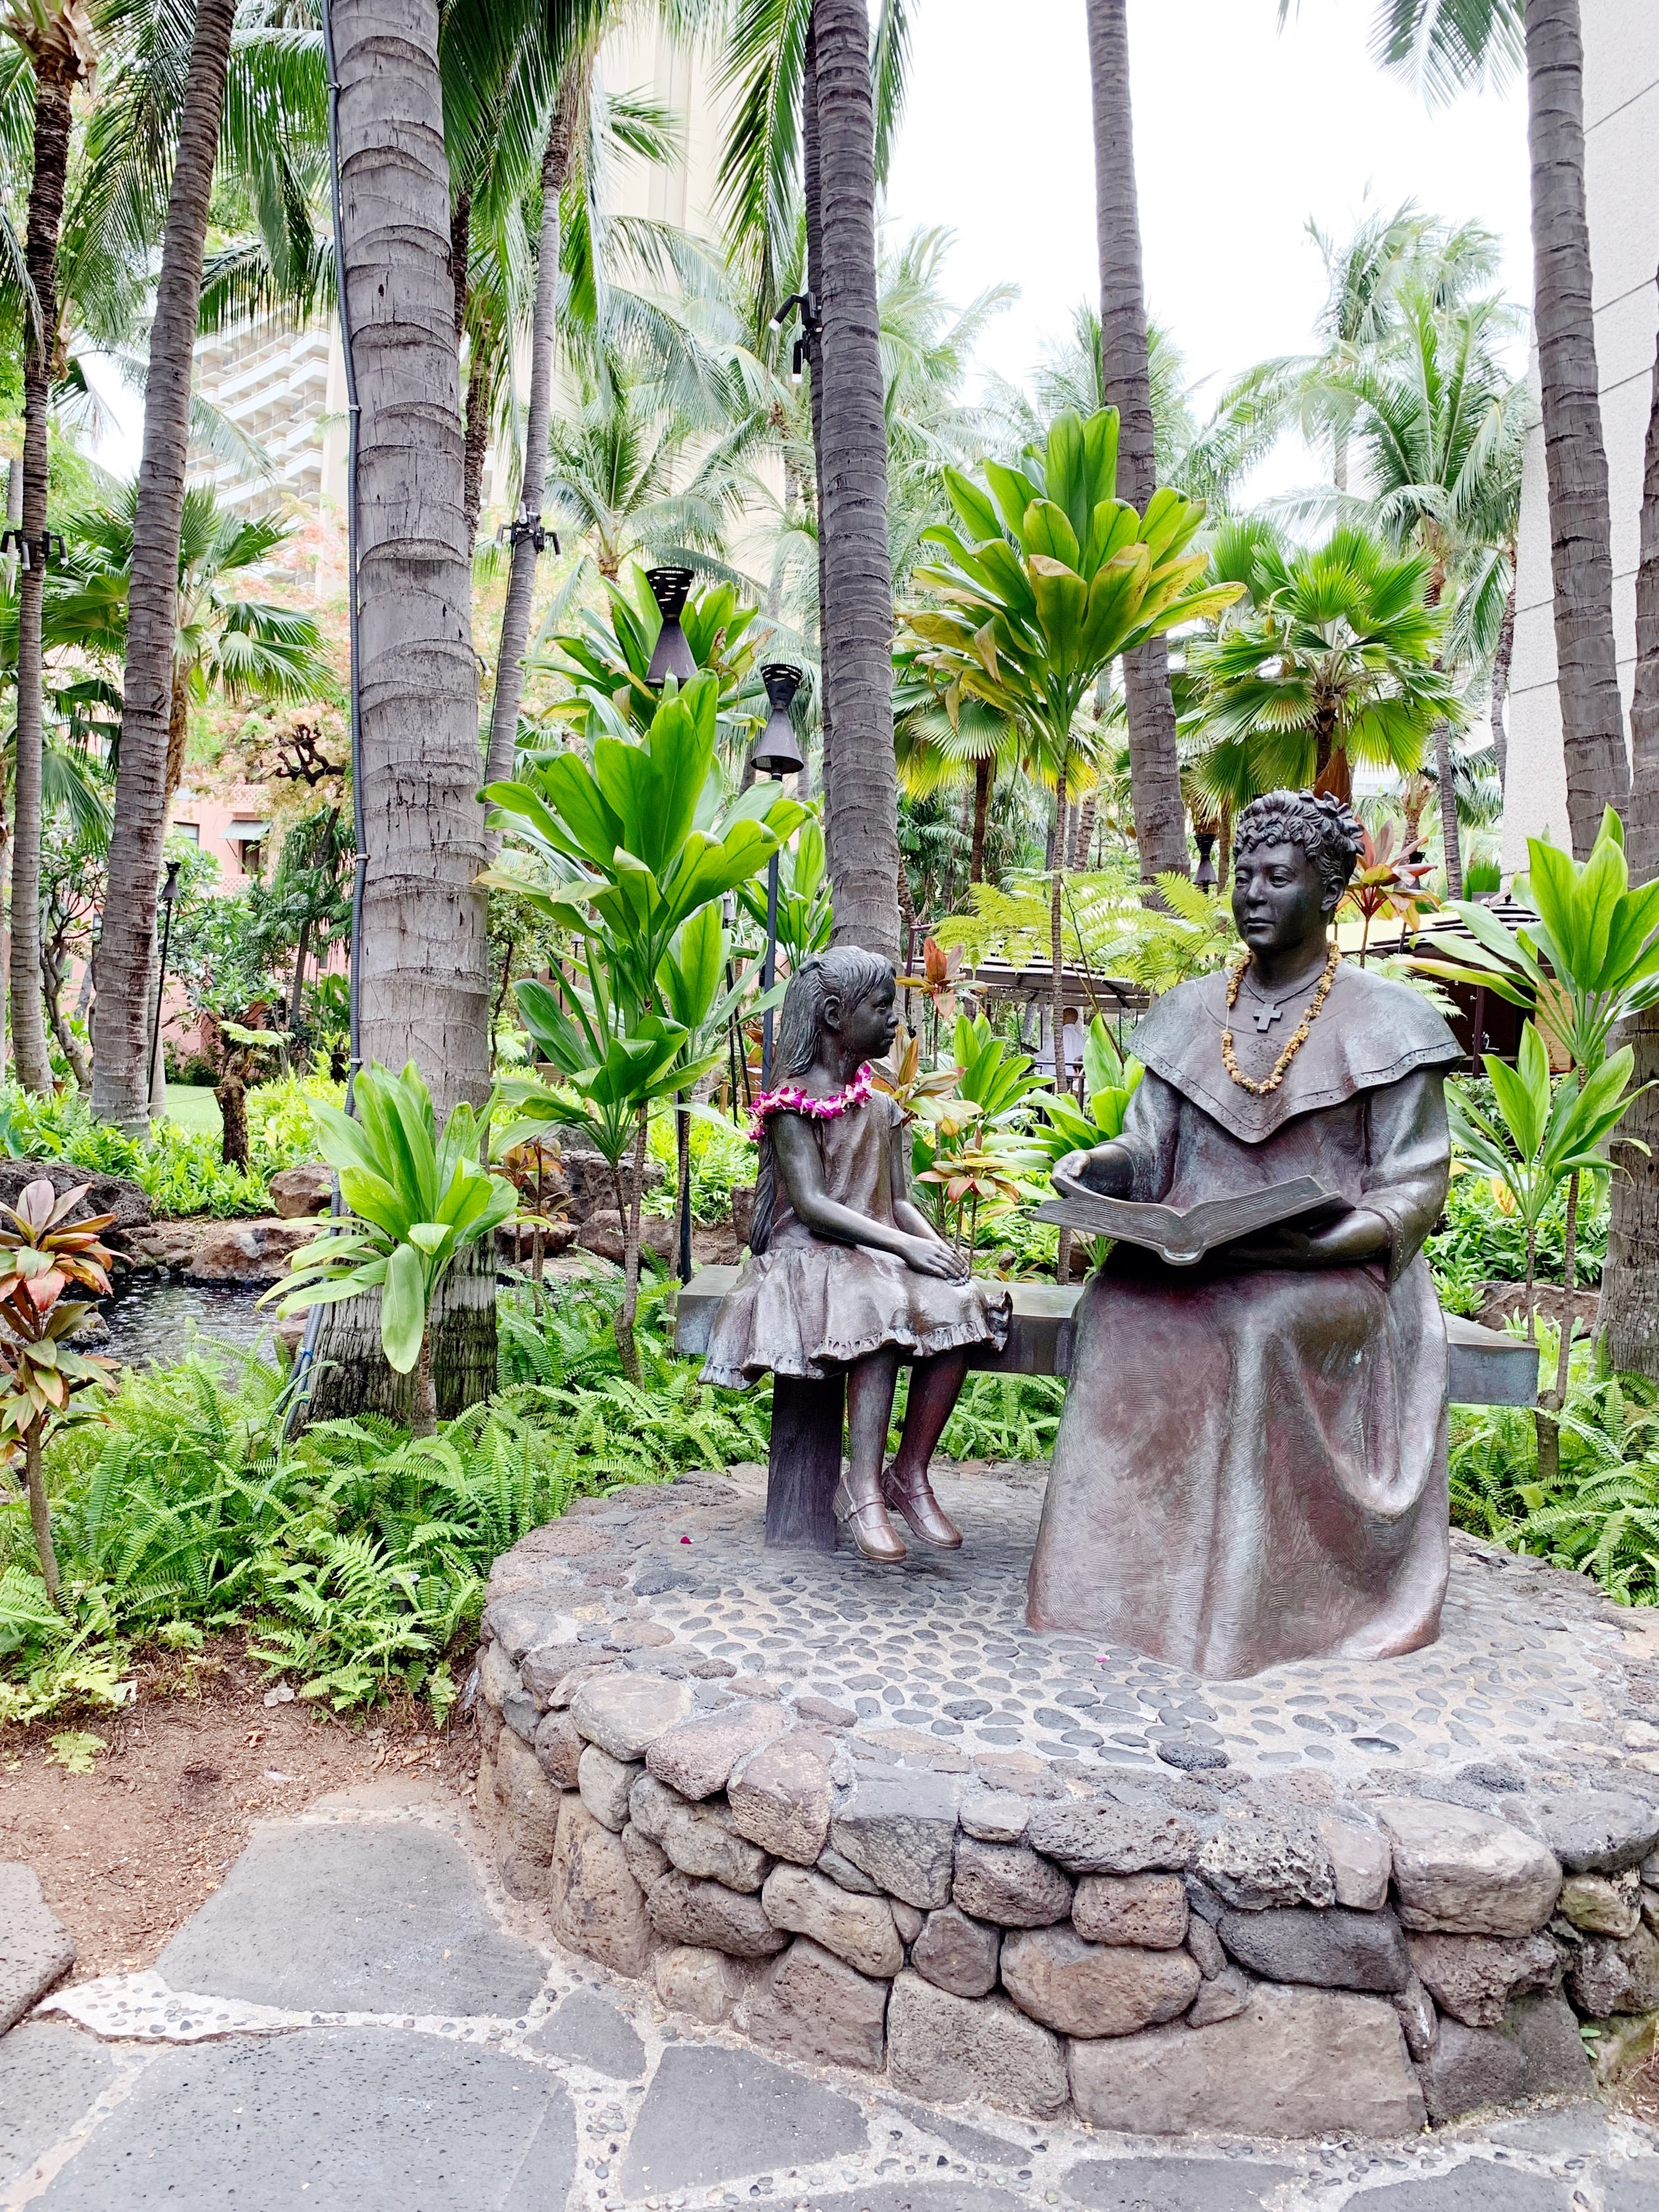 a bronze statue of Princess Bernice Pauahi, great-granddaughter of Kamehameha I, Hawaiʻi's first monarch